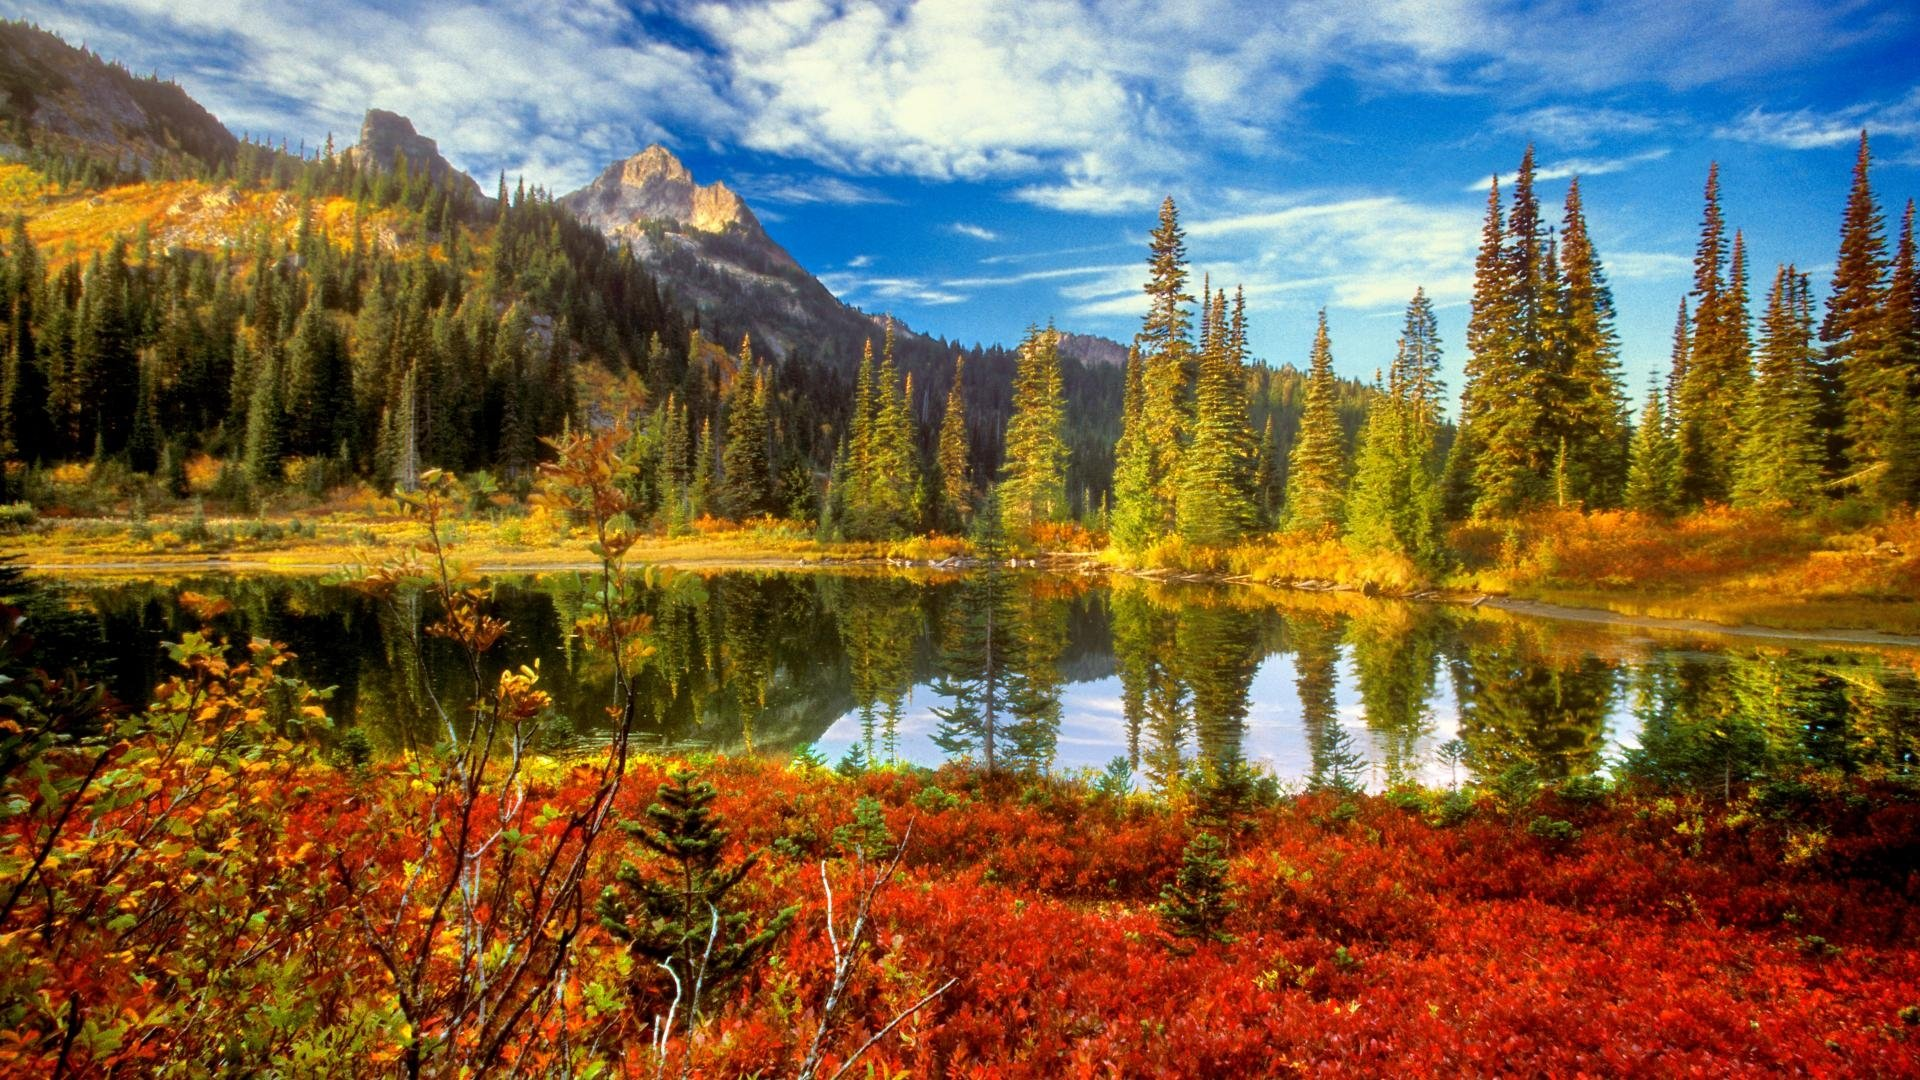 Beautiful Fall Backgrounds 35856 Hd Wallpapers Background   HDesktops 1920x1080